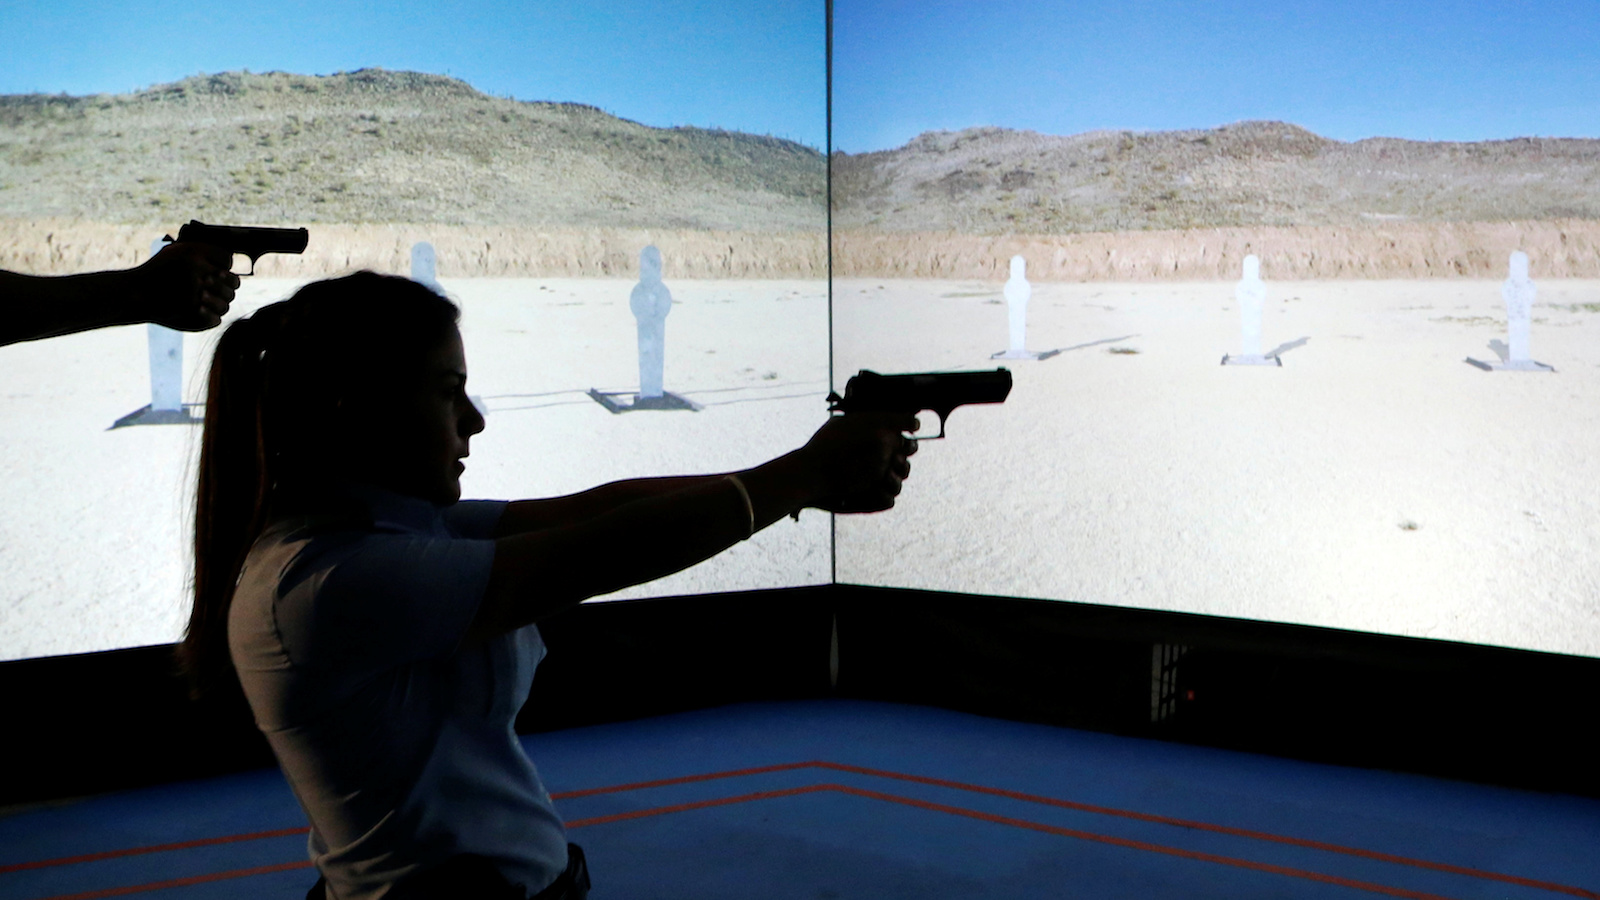 An Arab Israeli police recruit takes aim with her gun towards a screen displaying targets during a training exercise at Israeli police academy center in Beit Shemesh, Israel August 24, 2016. Picture taken August 24, 2016. REUTERS/Ammar Awad - RTX2N05O